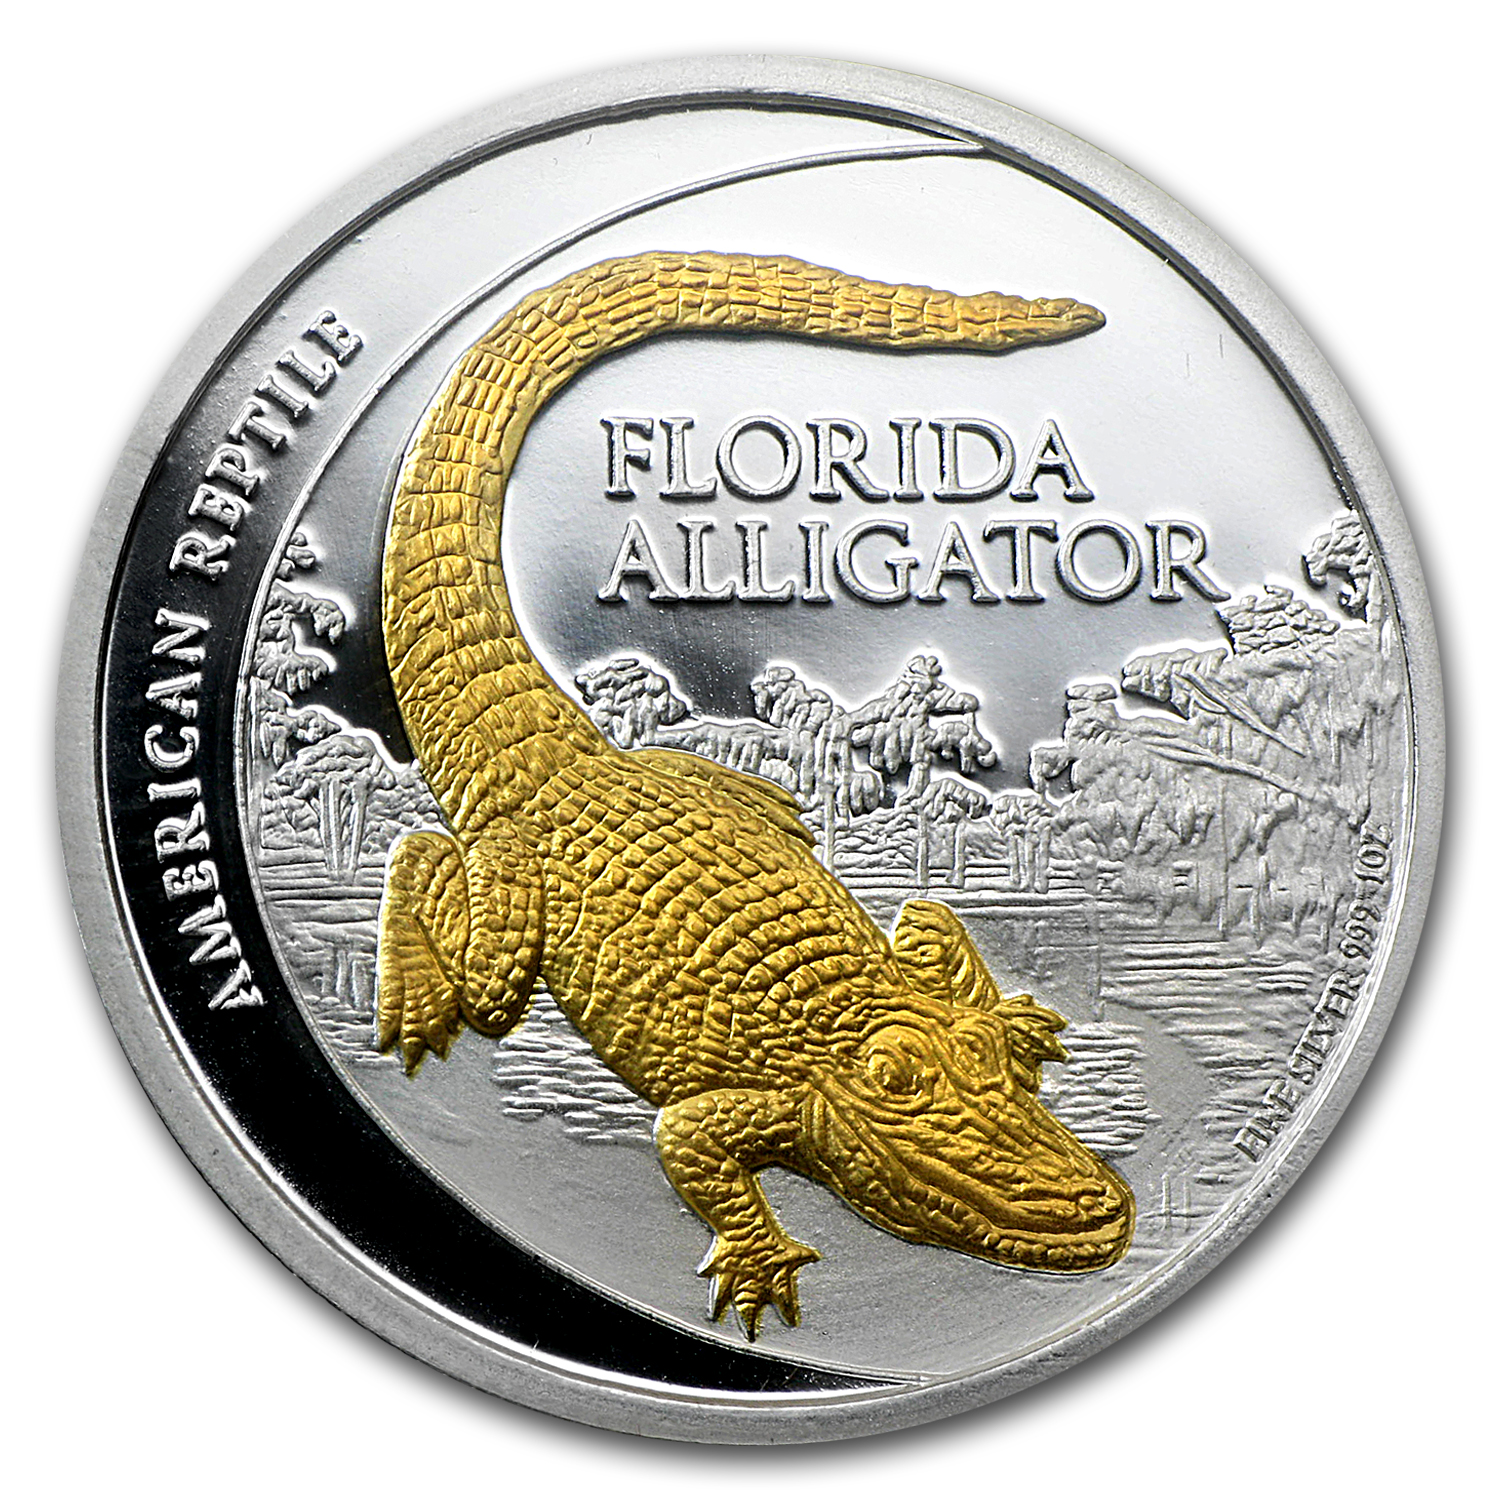 2012 Niue 1 oz Silver $2 Florida Alligator Proof (Gilded)